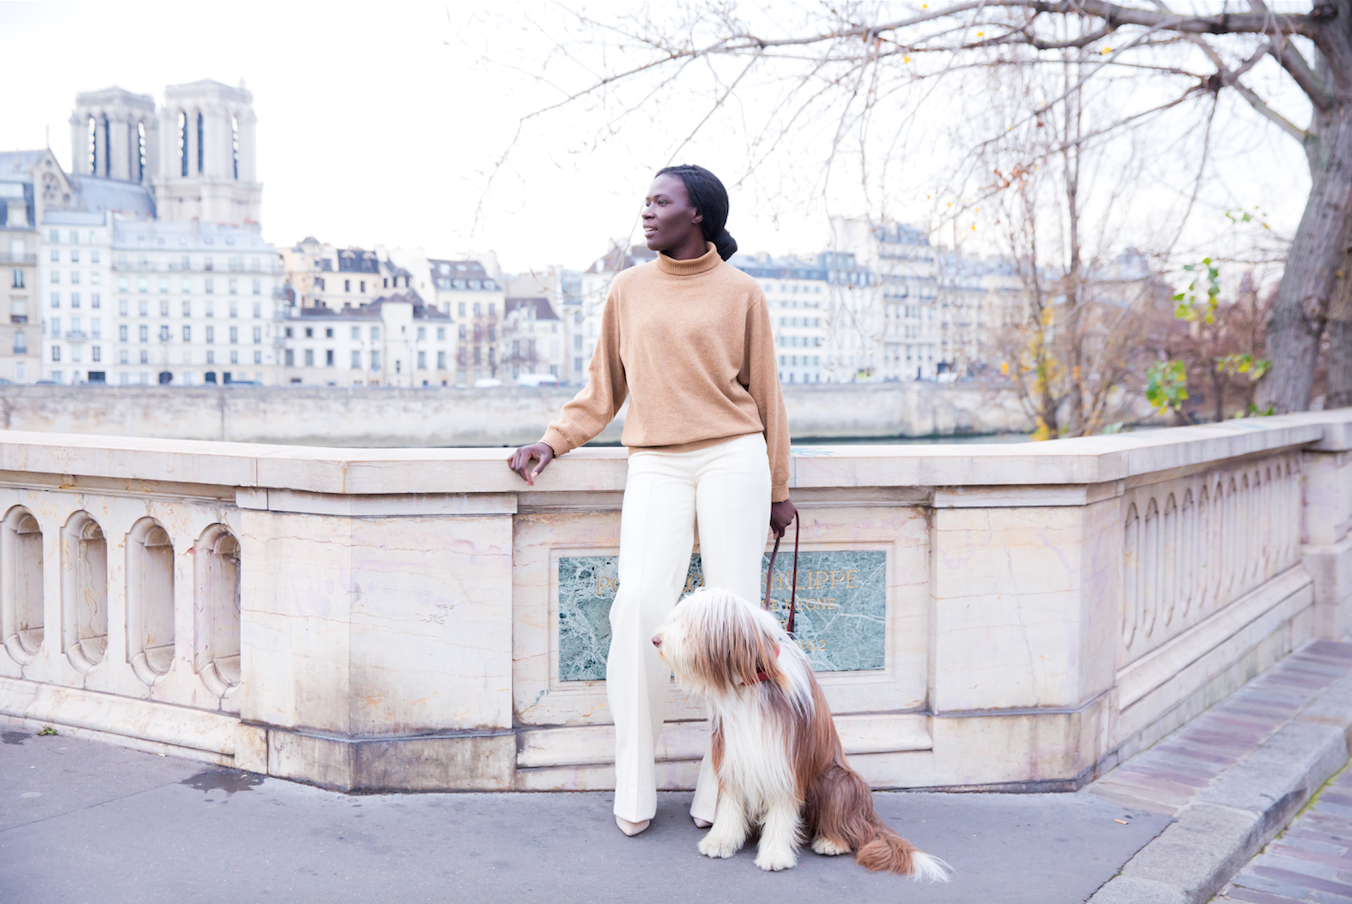 yanique in paris blogger by le secret audrey paris photographer blogger